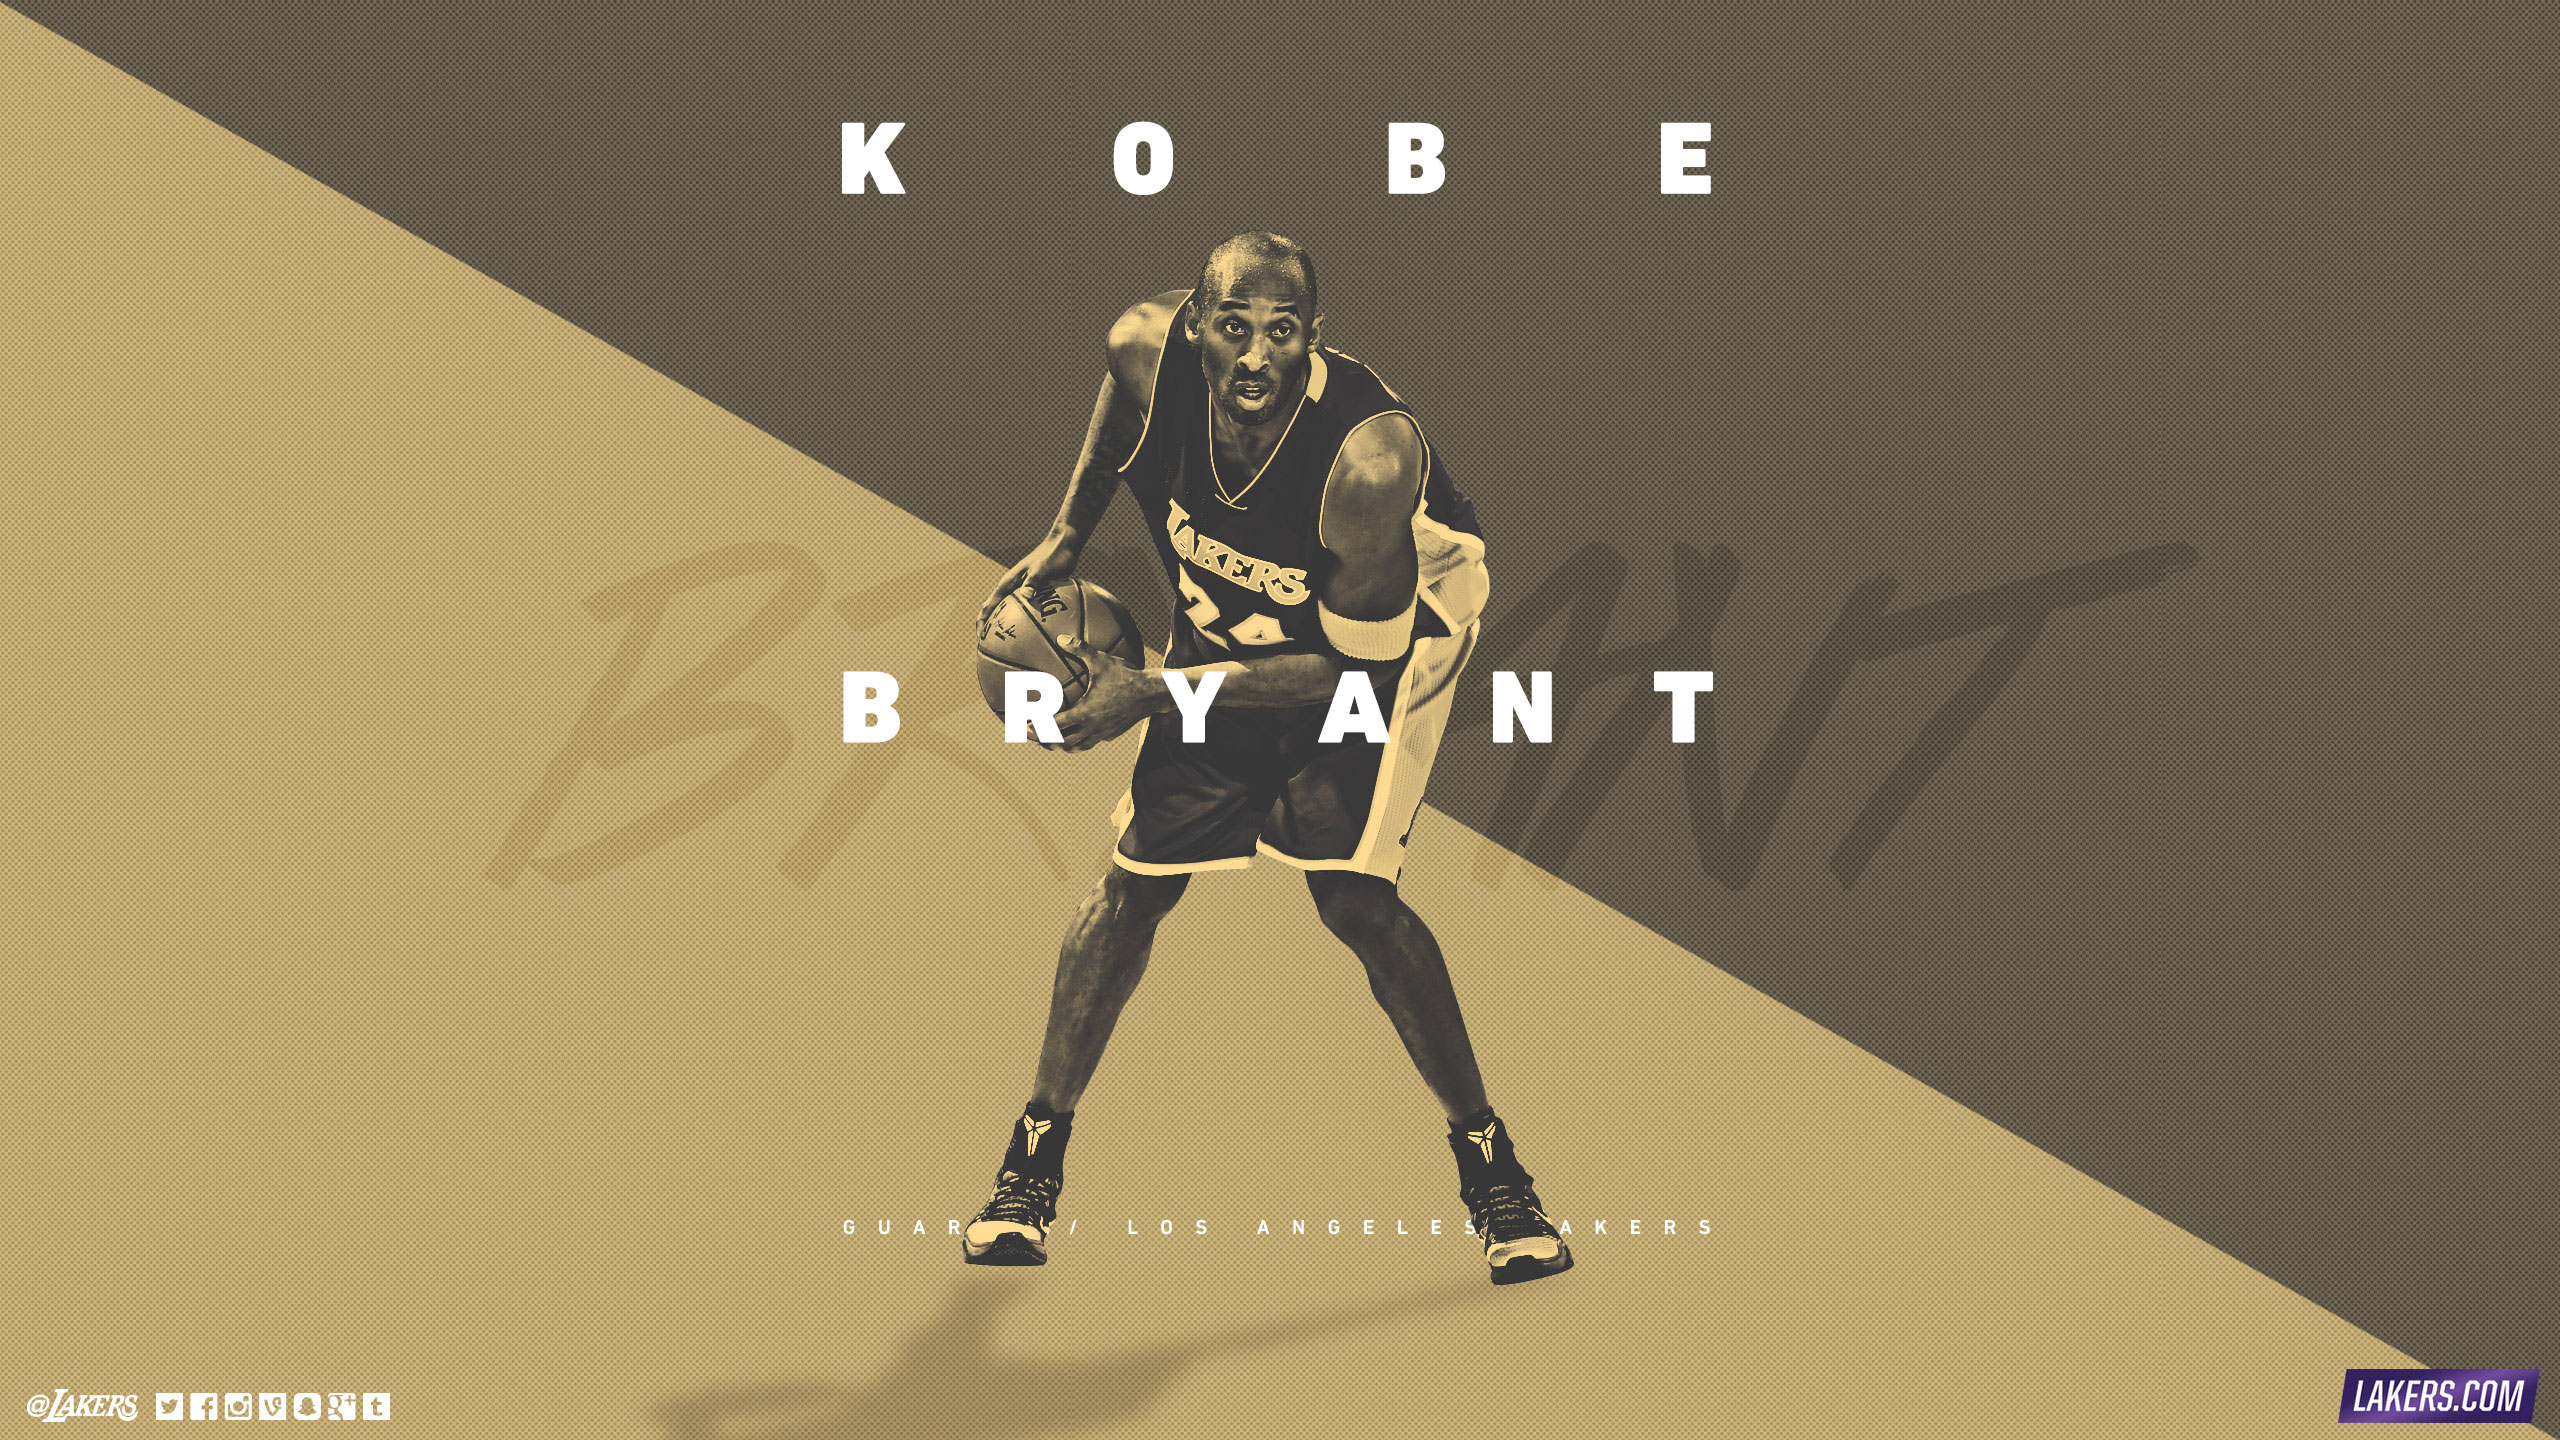 kobe bryant wallpaper 2016 - photo #37